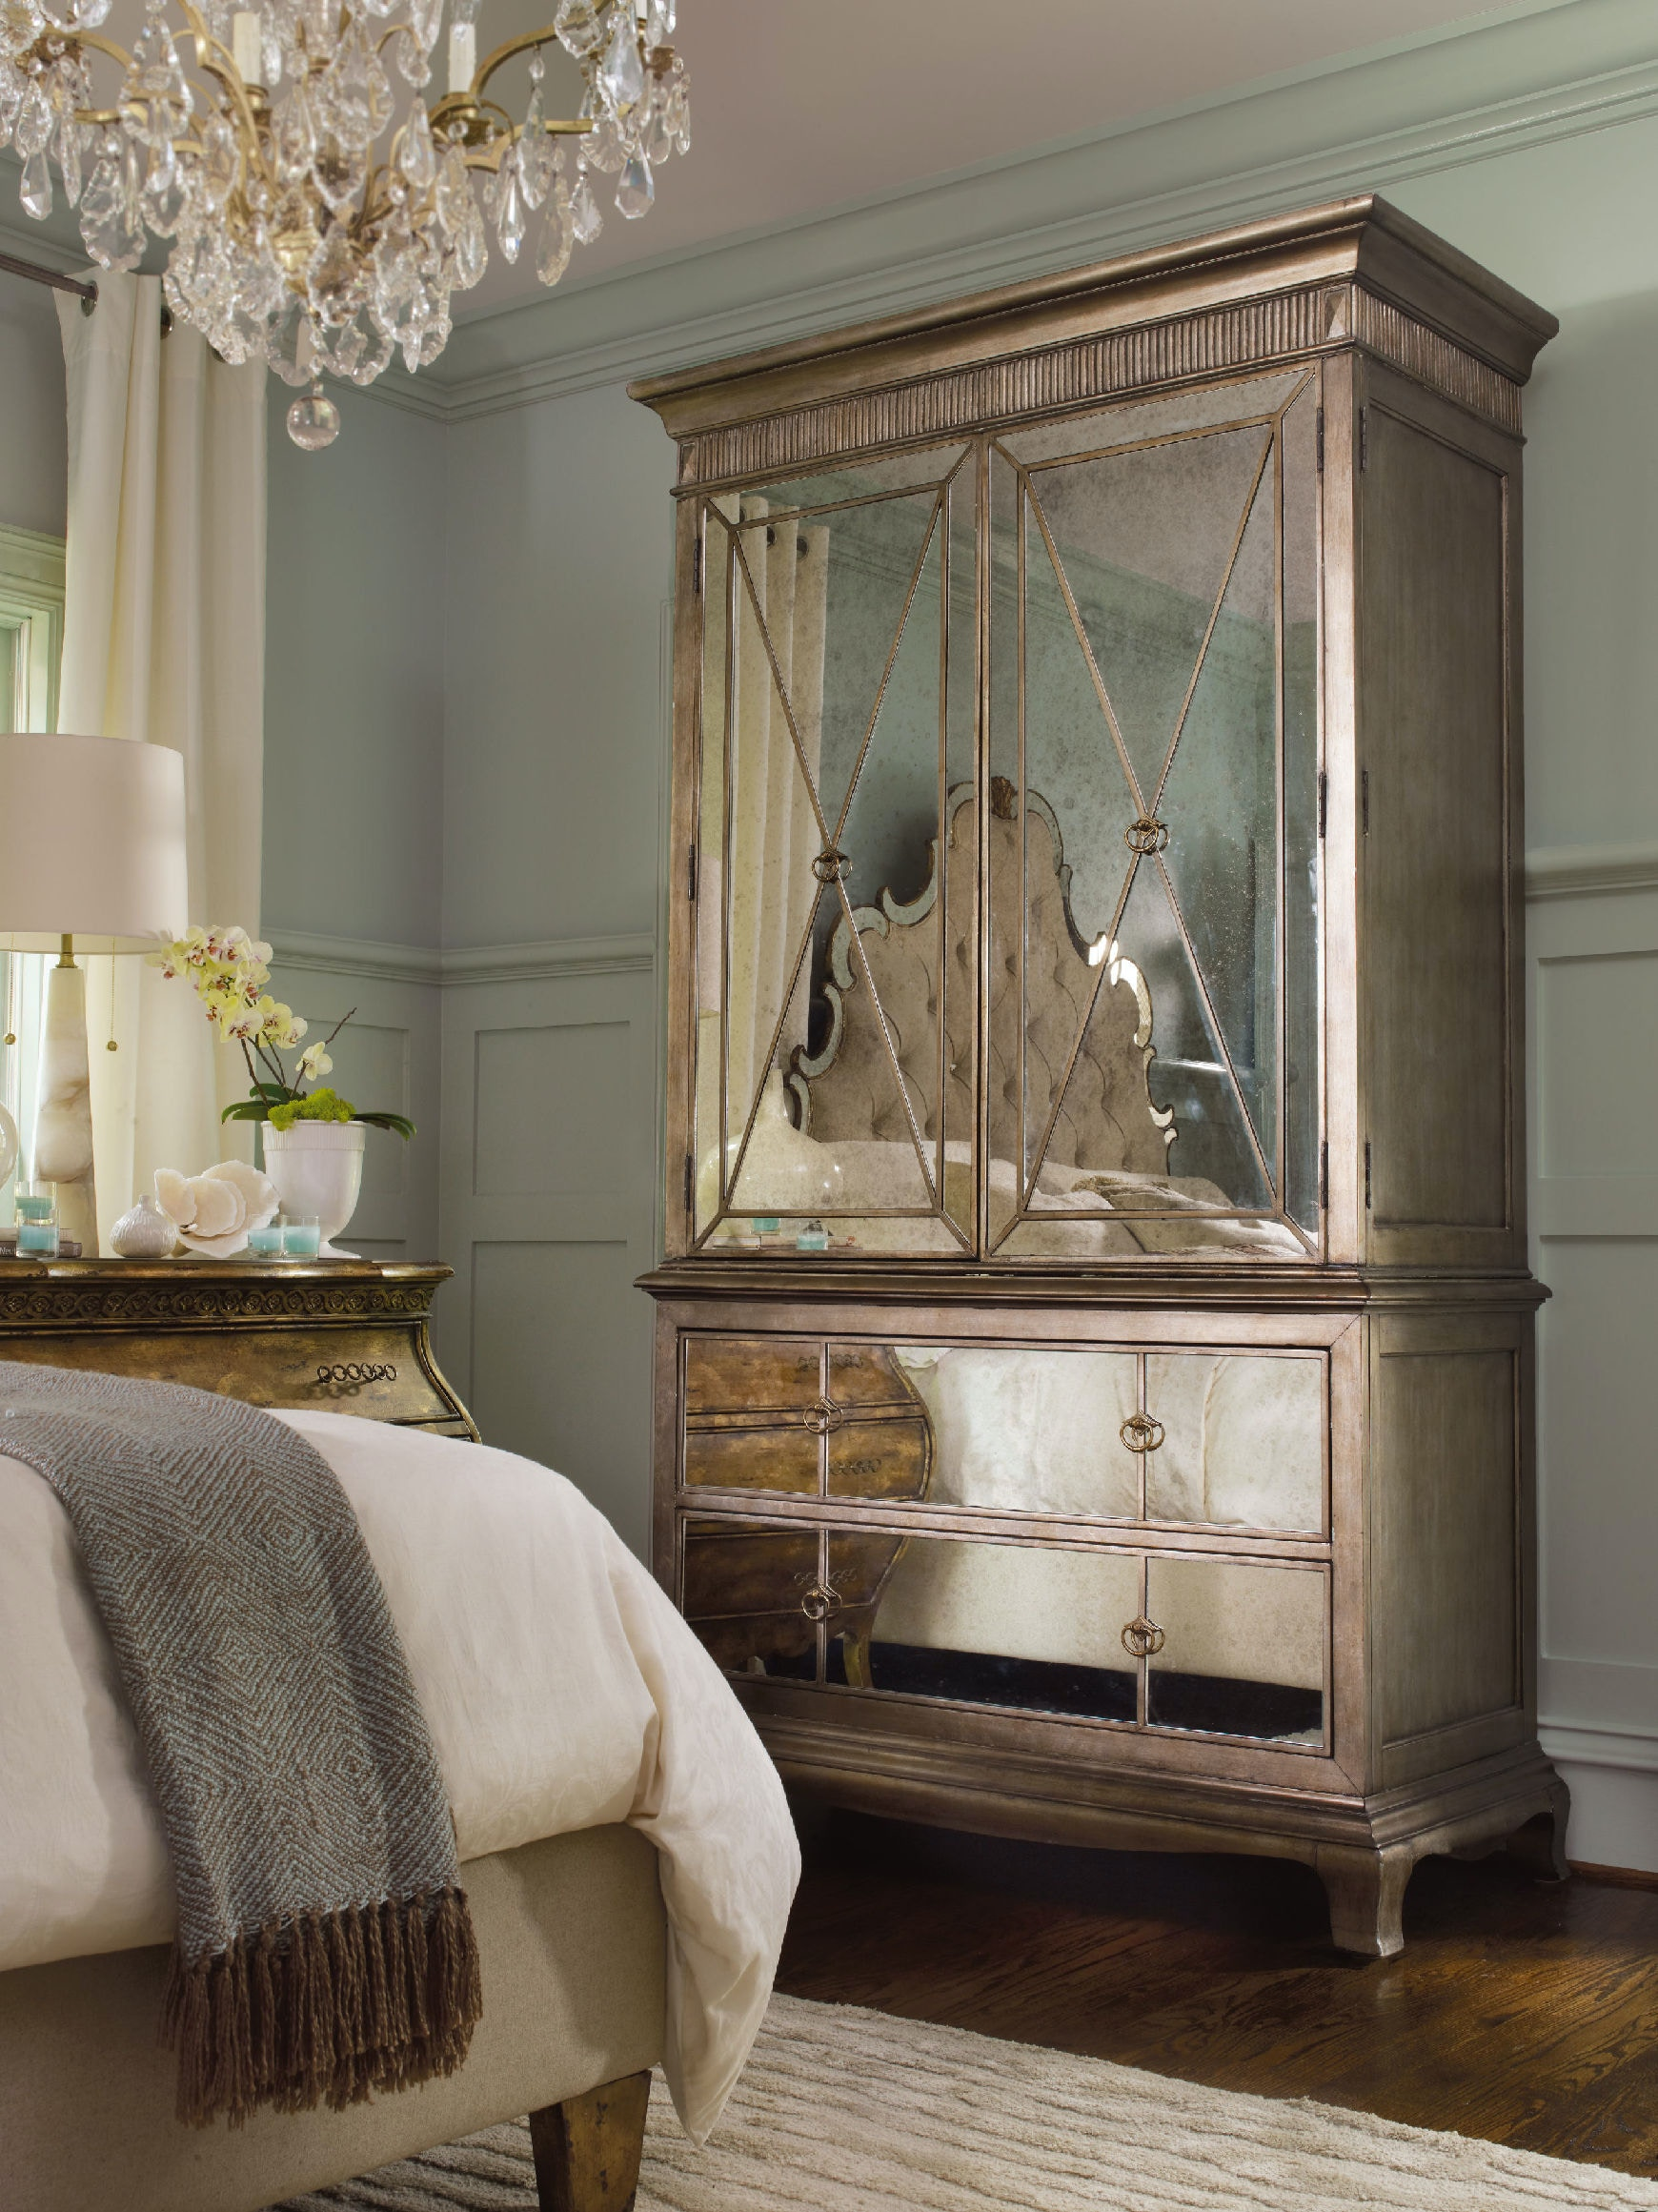 Hooker Furniture Bedroom Sanctuary Armoire - Visage 3016-90013